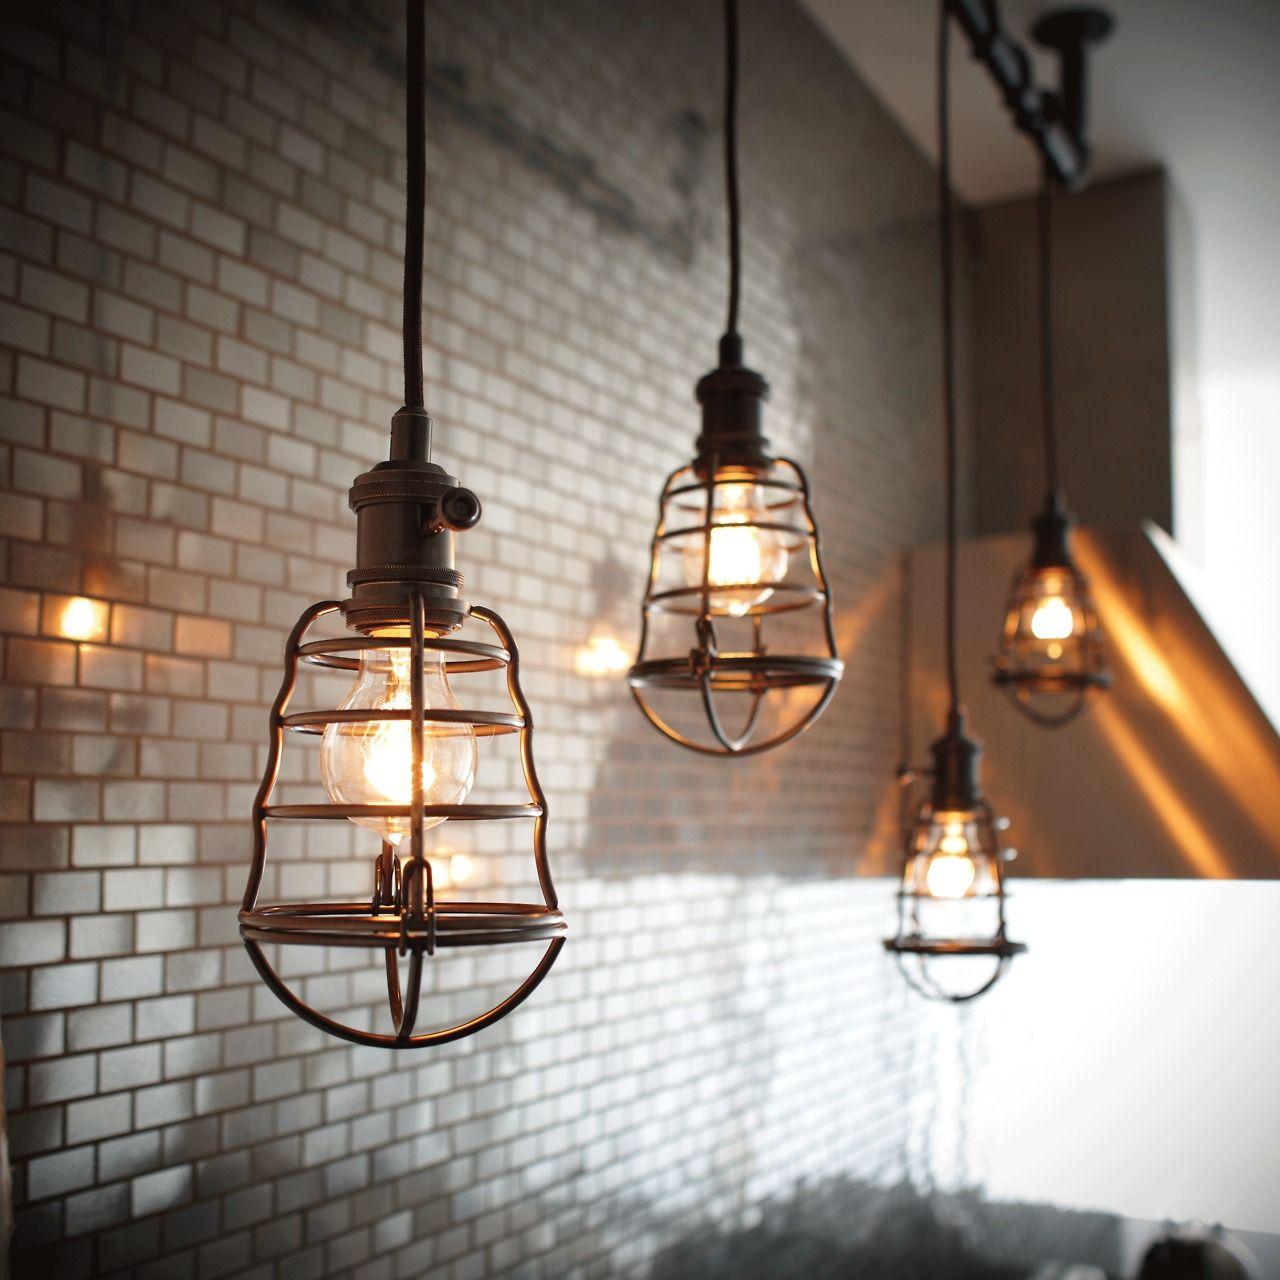 urban industrial drawing inspiration from the early 1900 s the urban industrial drawing inspiration from the early 1900 s the cage pendant recreates a period